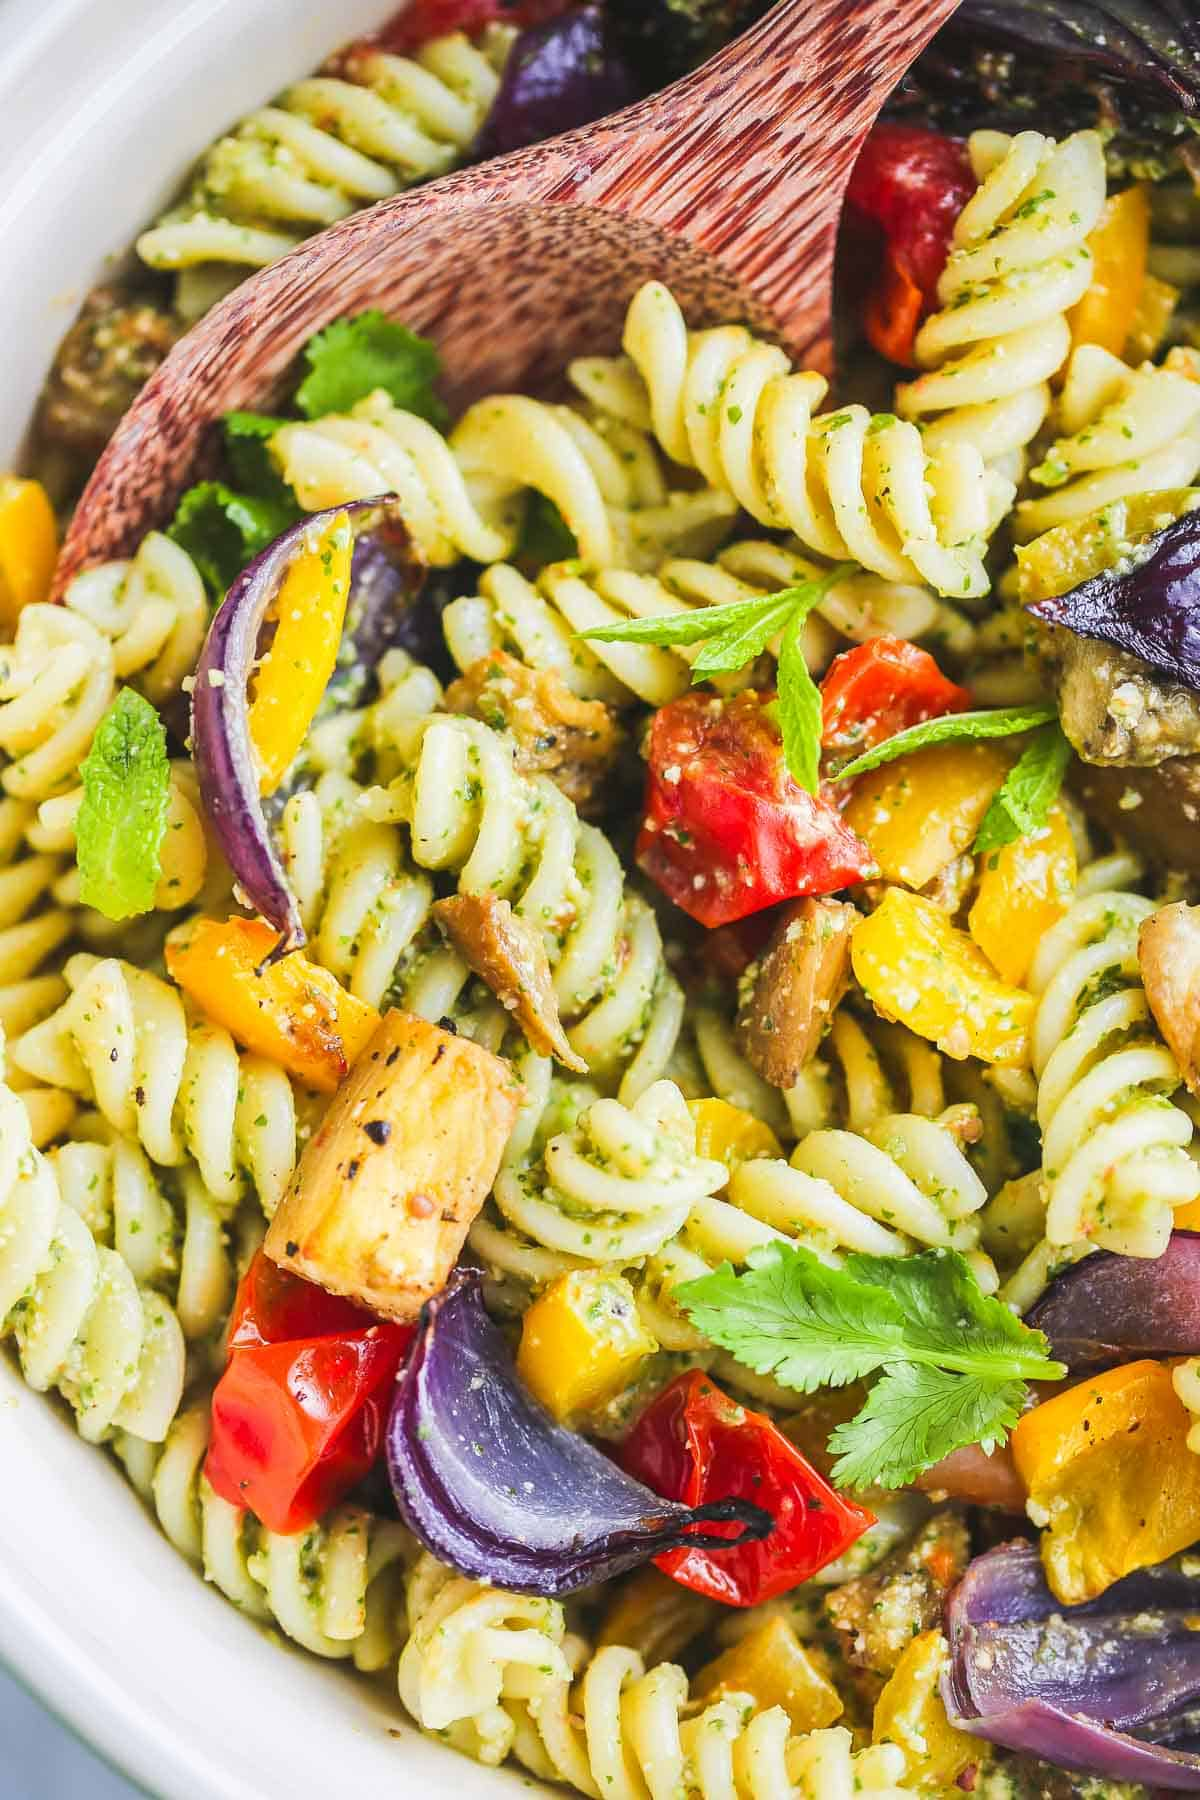 The colourful vegan pasta salad served in a large ceramic bowl